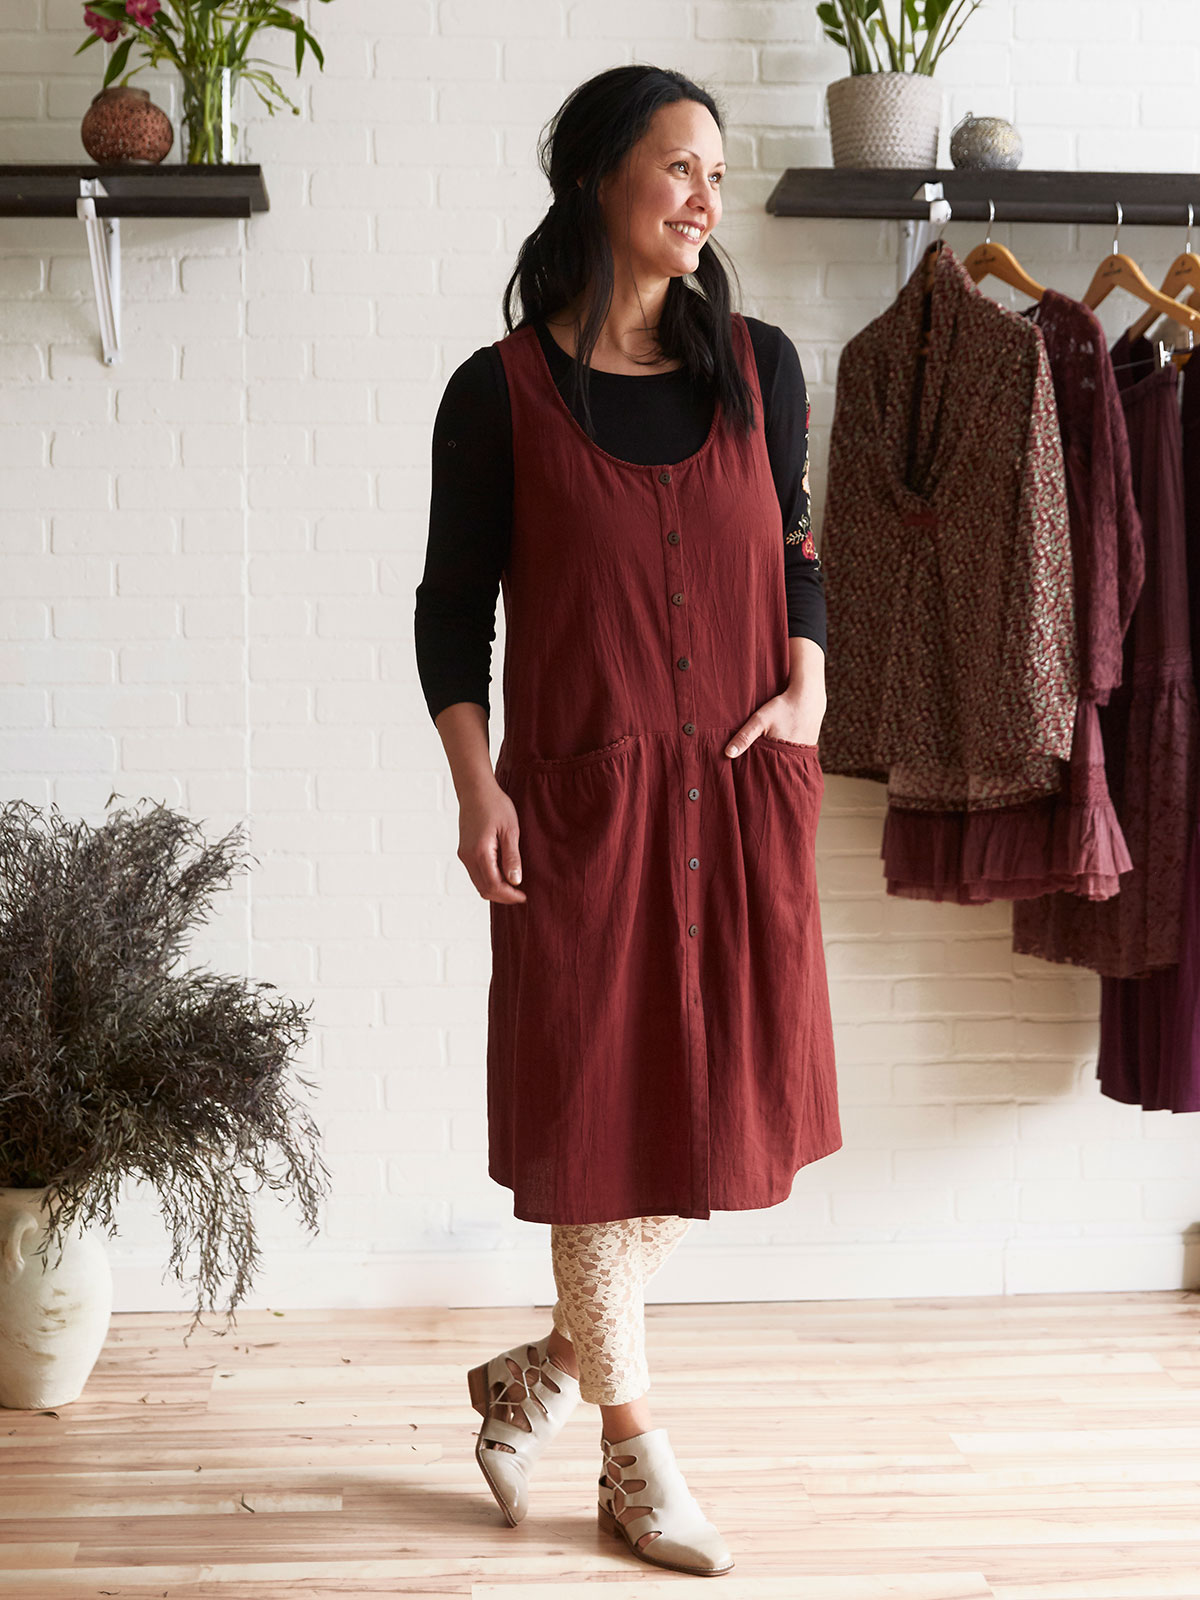 Chestnut Dress